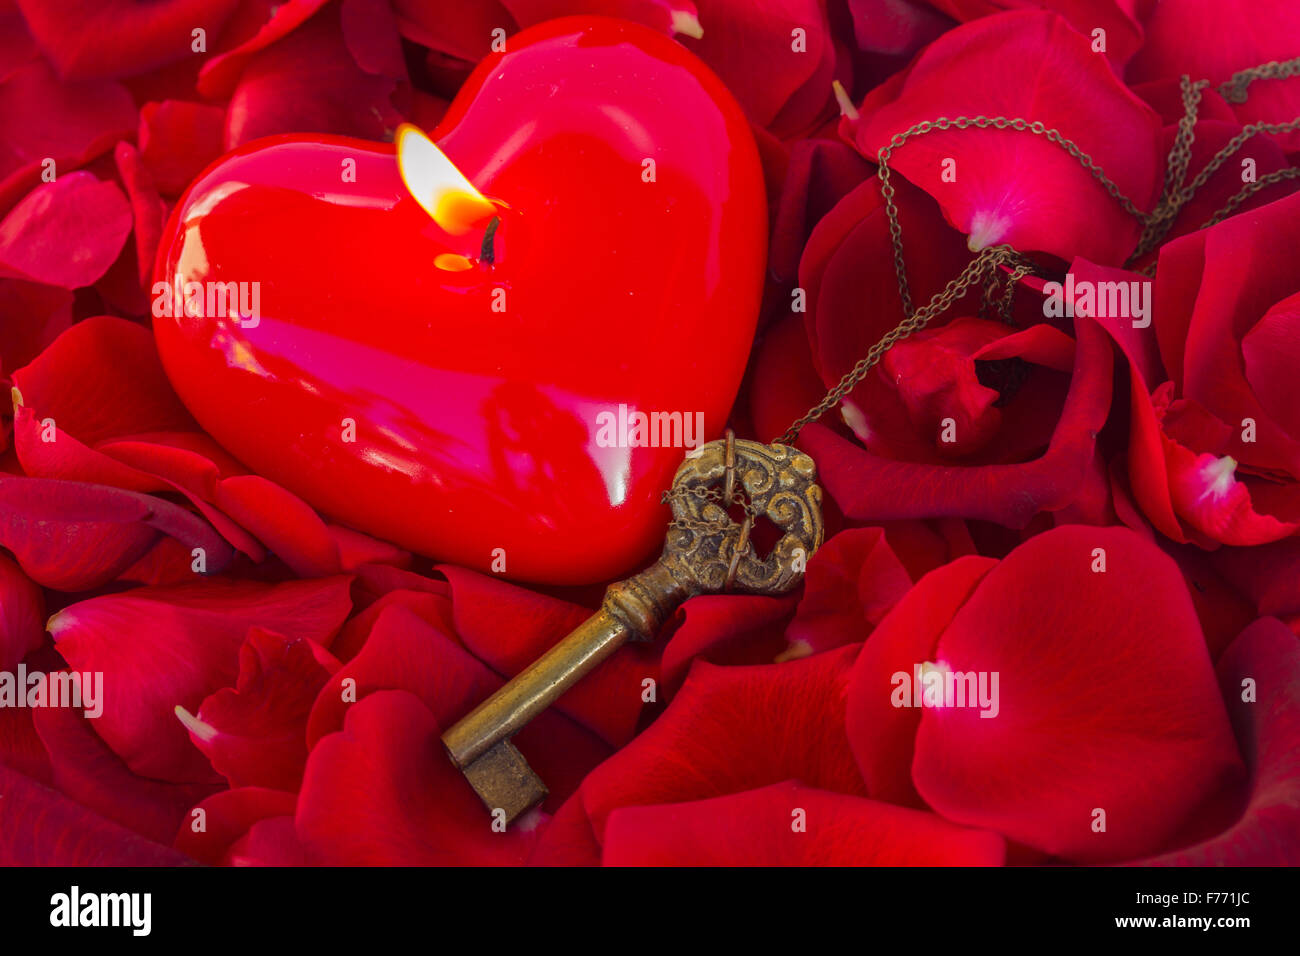 Candle Heart Symbol Key Love Rose Stock Photos Candle Heart Symbol